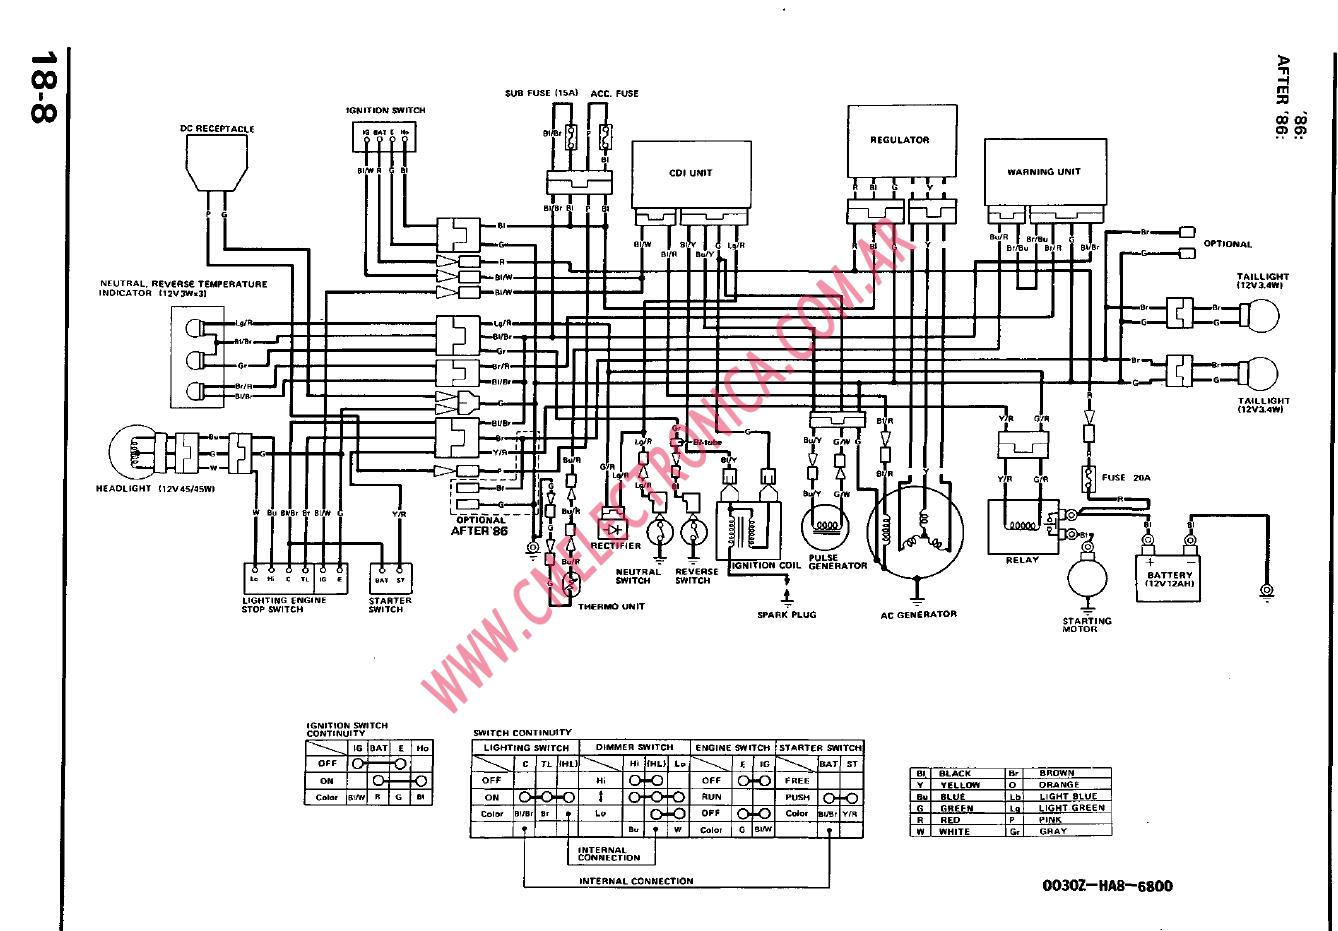 1998 yamaha big bear 350 wiring diagram 1998 kawasaki bayou 300 wiring diagram wiring diagram Yamaha Warrior Wiring Harness Yamaha Warrior ATV Wiring